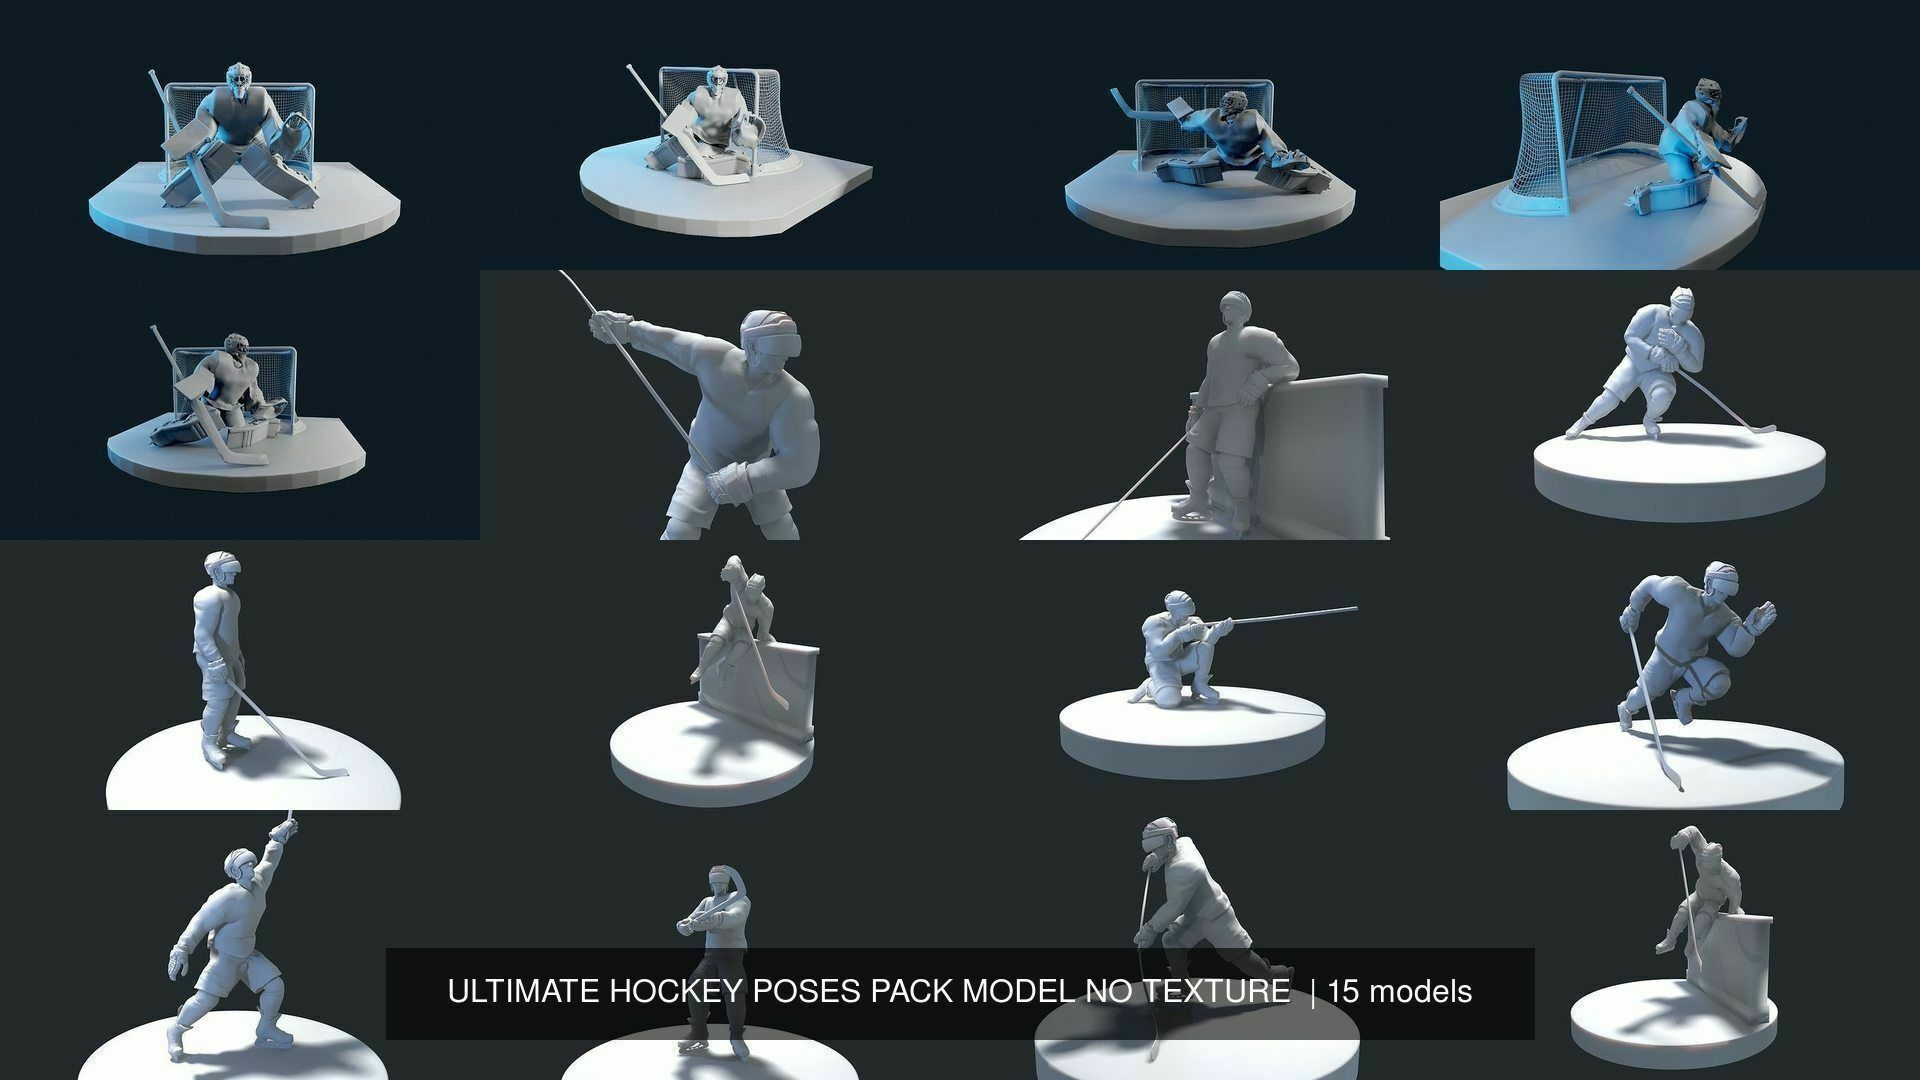 ultimate-hockey-poses-pack-model-no-texture-3d-model-max-obj-fbx-stl-tbscene (1).jpg Download OBJ file ULTIMATE HOCKEY POSES PACK MODEL NO TEXTURE 3D Model Collection • 3D printing template, NightCreativity